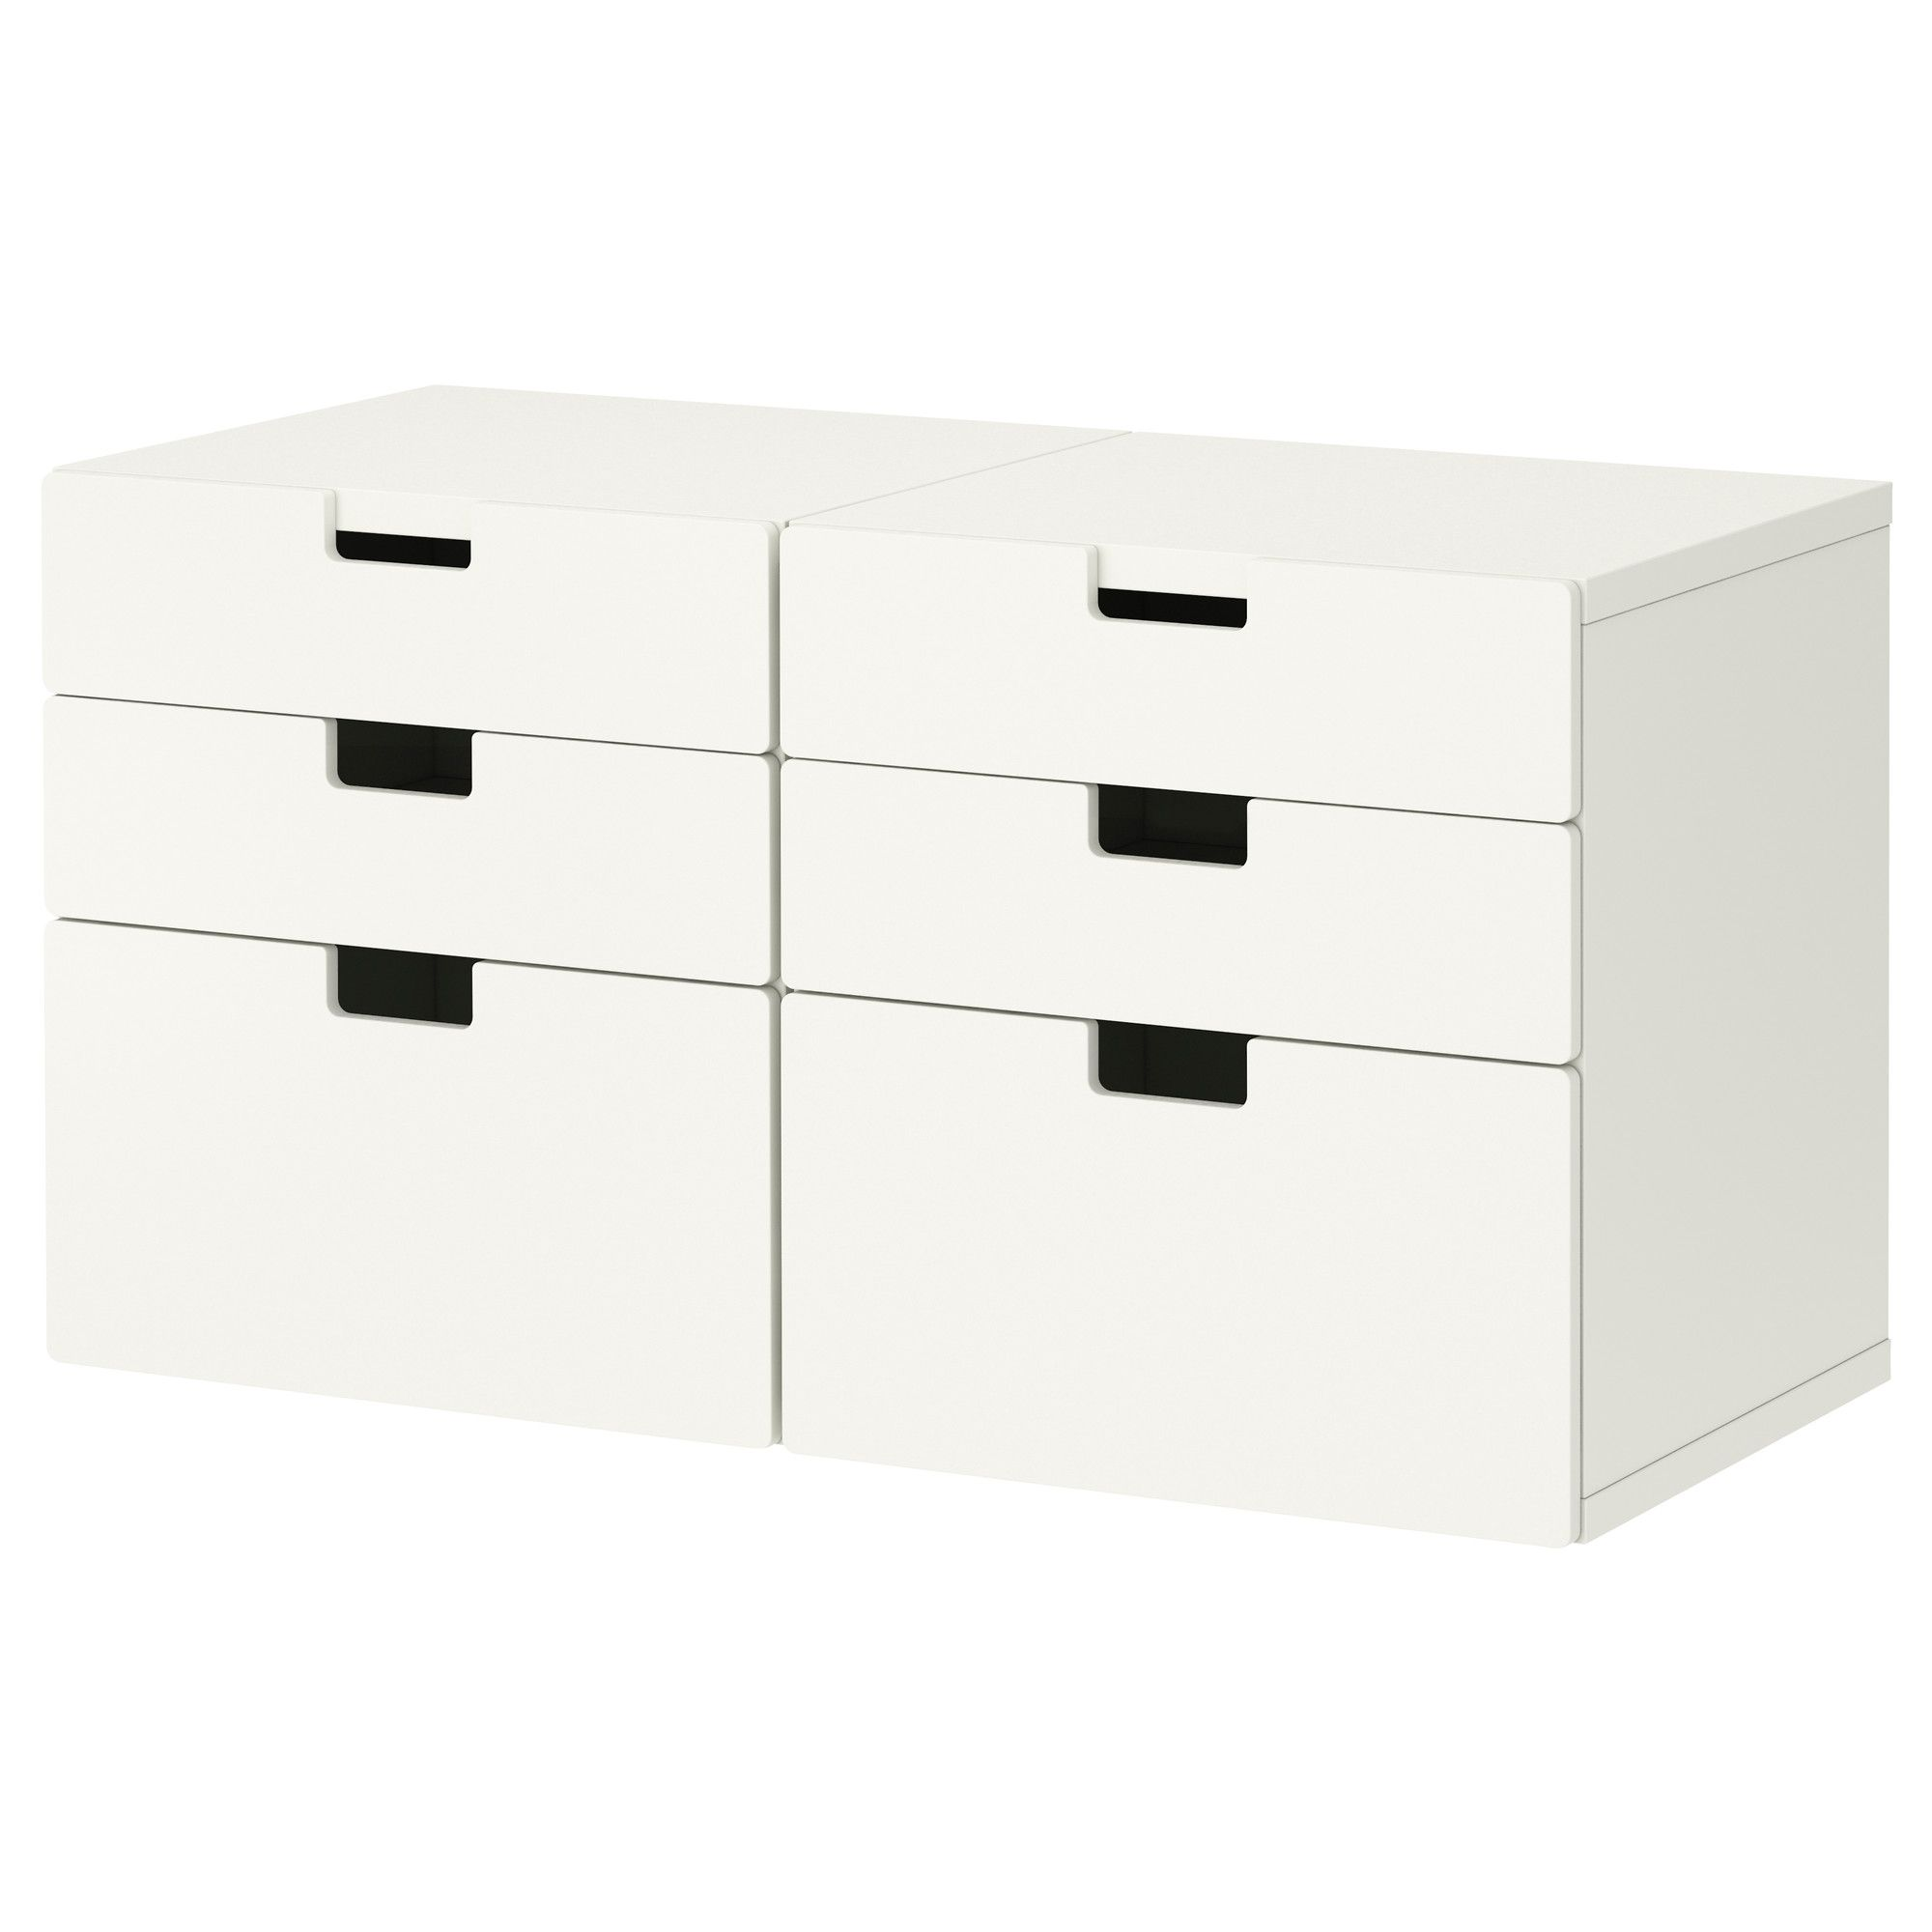 ikea stuva combinaison rangement tiroirs blanc blanc 178 r f rence de l 39 article. Black Bedroom Furniture Sets. Home Design Ideas